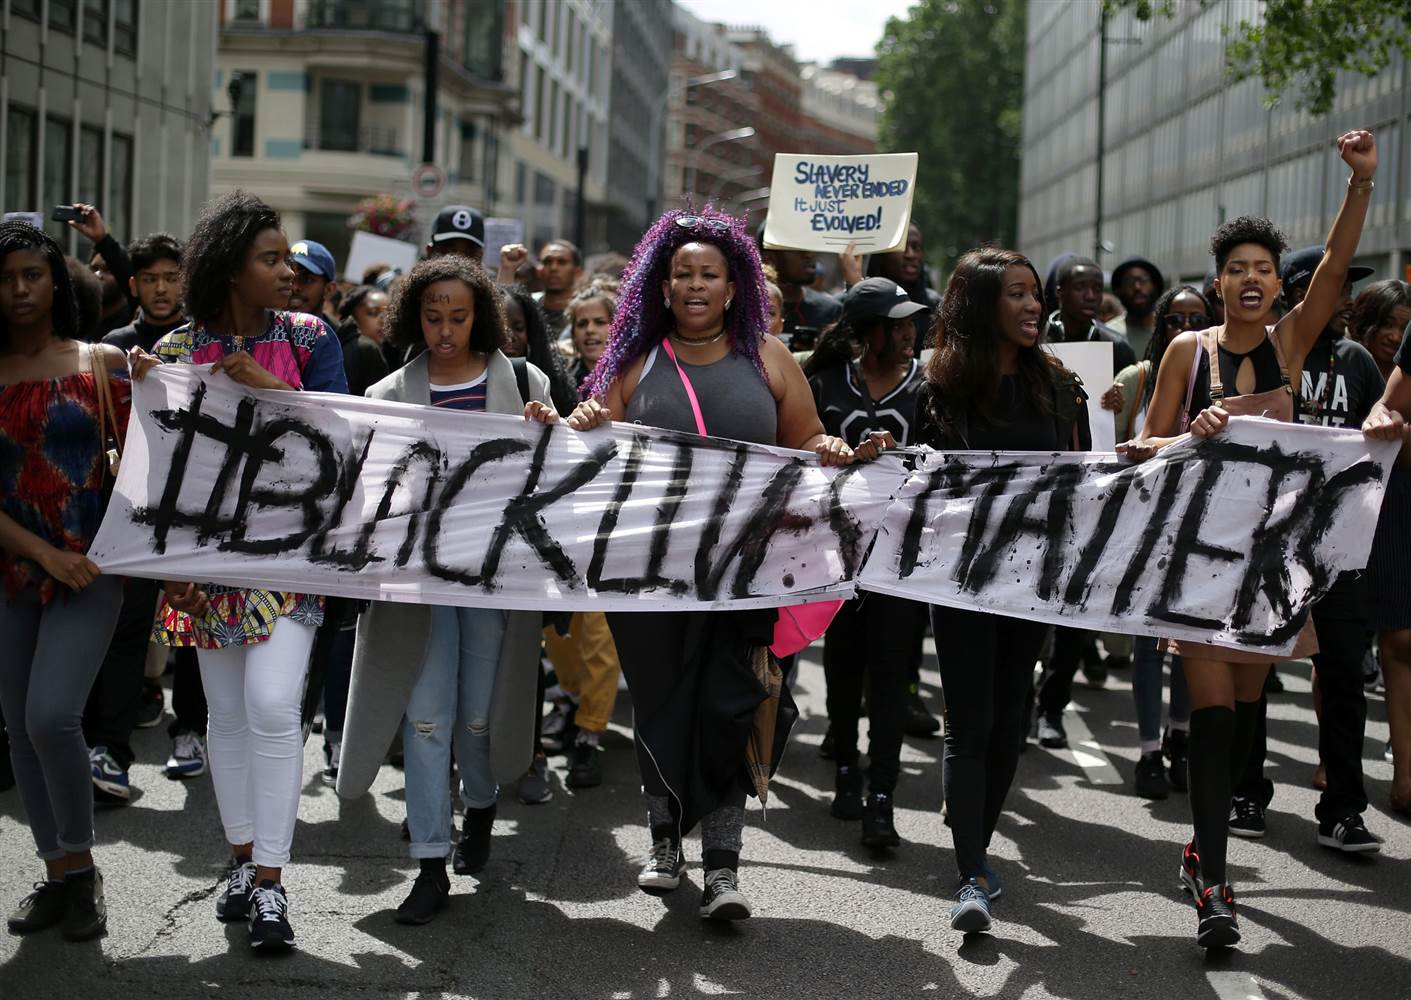 160914-black-lives-matter-london-group-130p_f76c6675641243b0dfdcd6379ffeac9b.nbcnews-ux-2880-1000.jpg